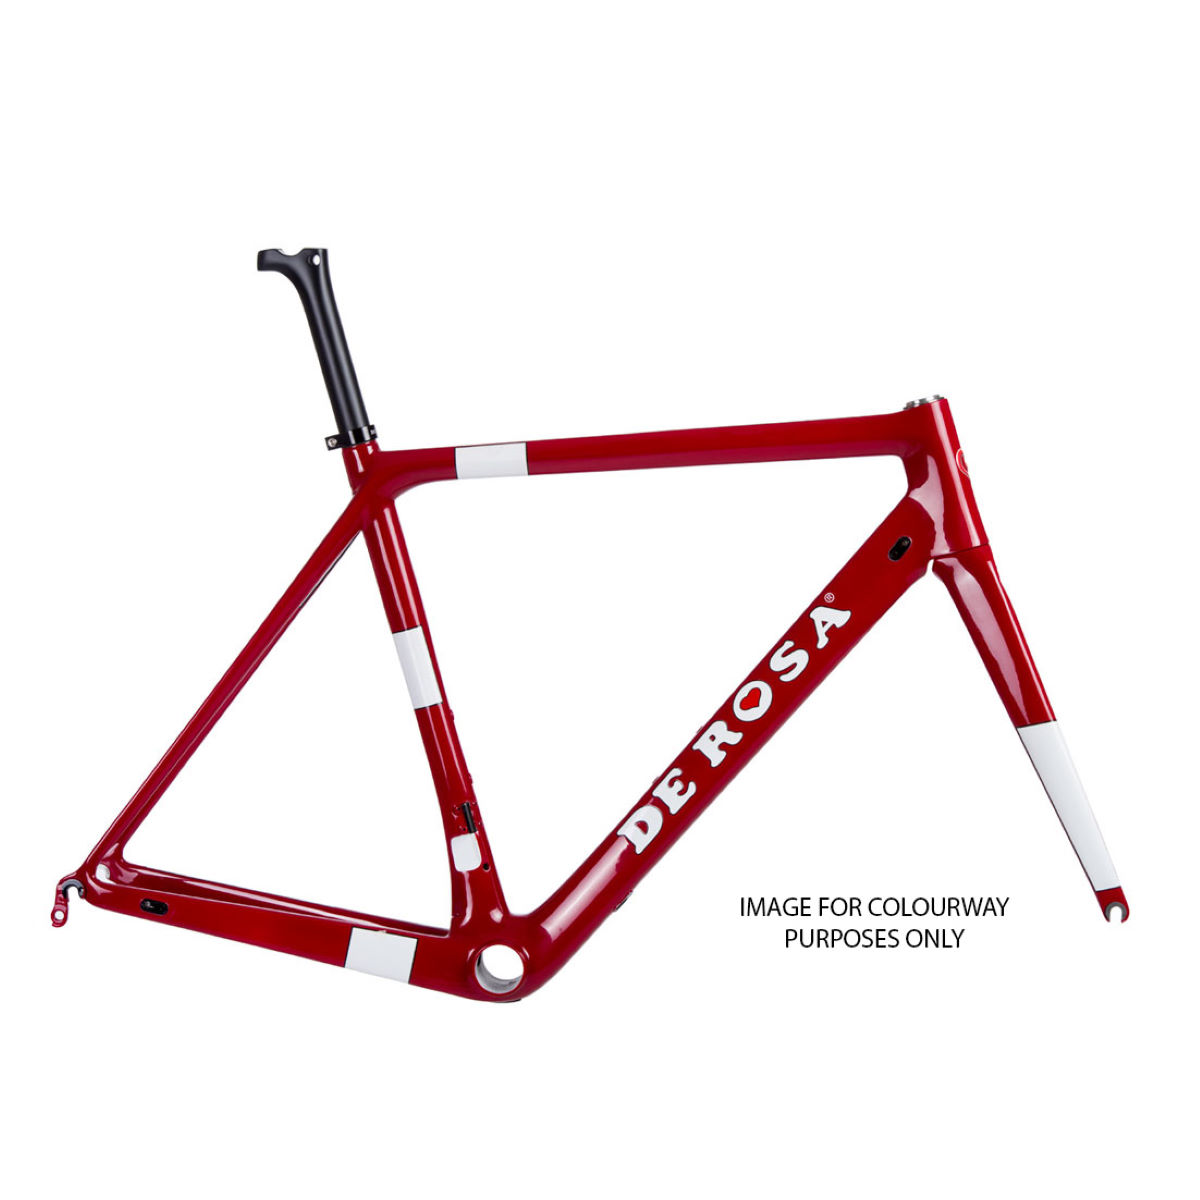 Vélo de route De Rosa King XS (Dura-Ace 9100, 2017) - 51cm Stock Bike